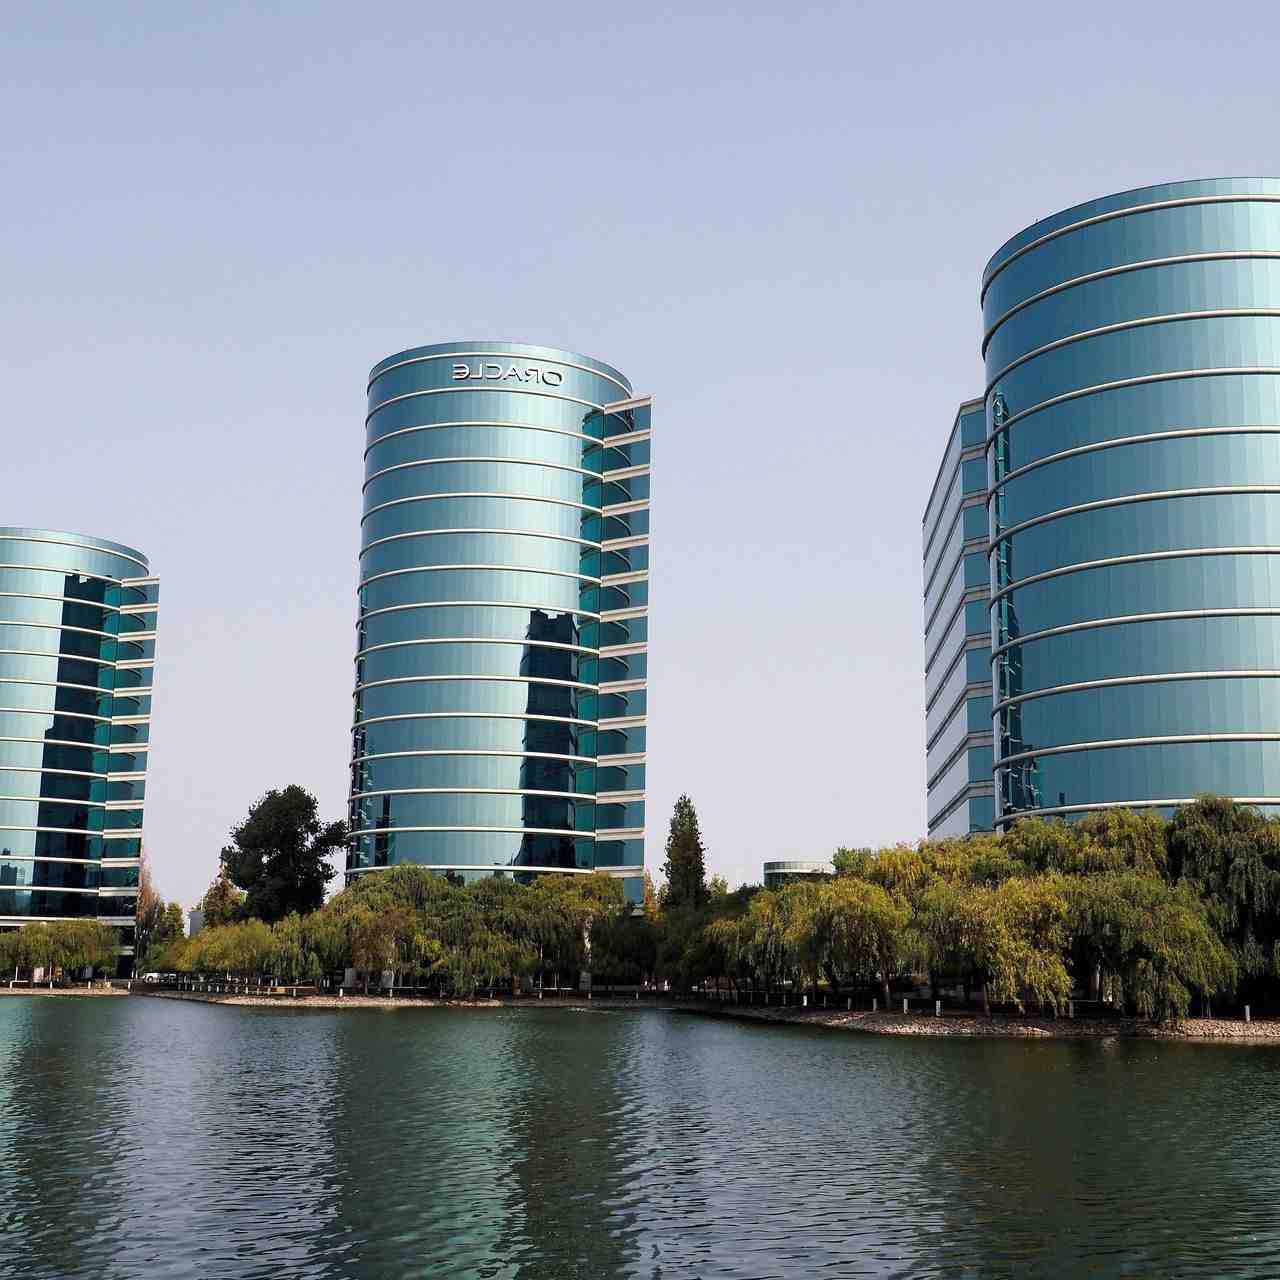 What big companies are in Silicon Valley?